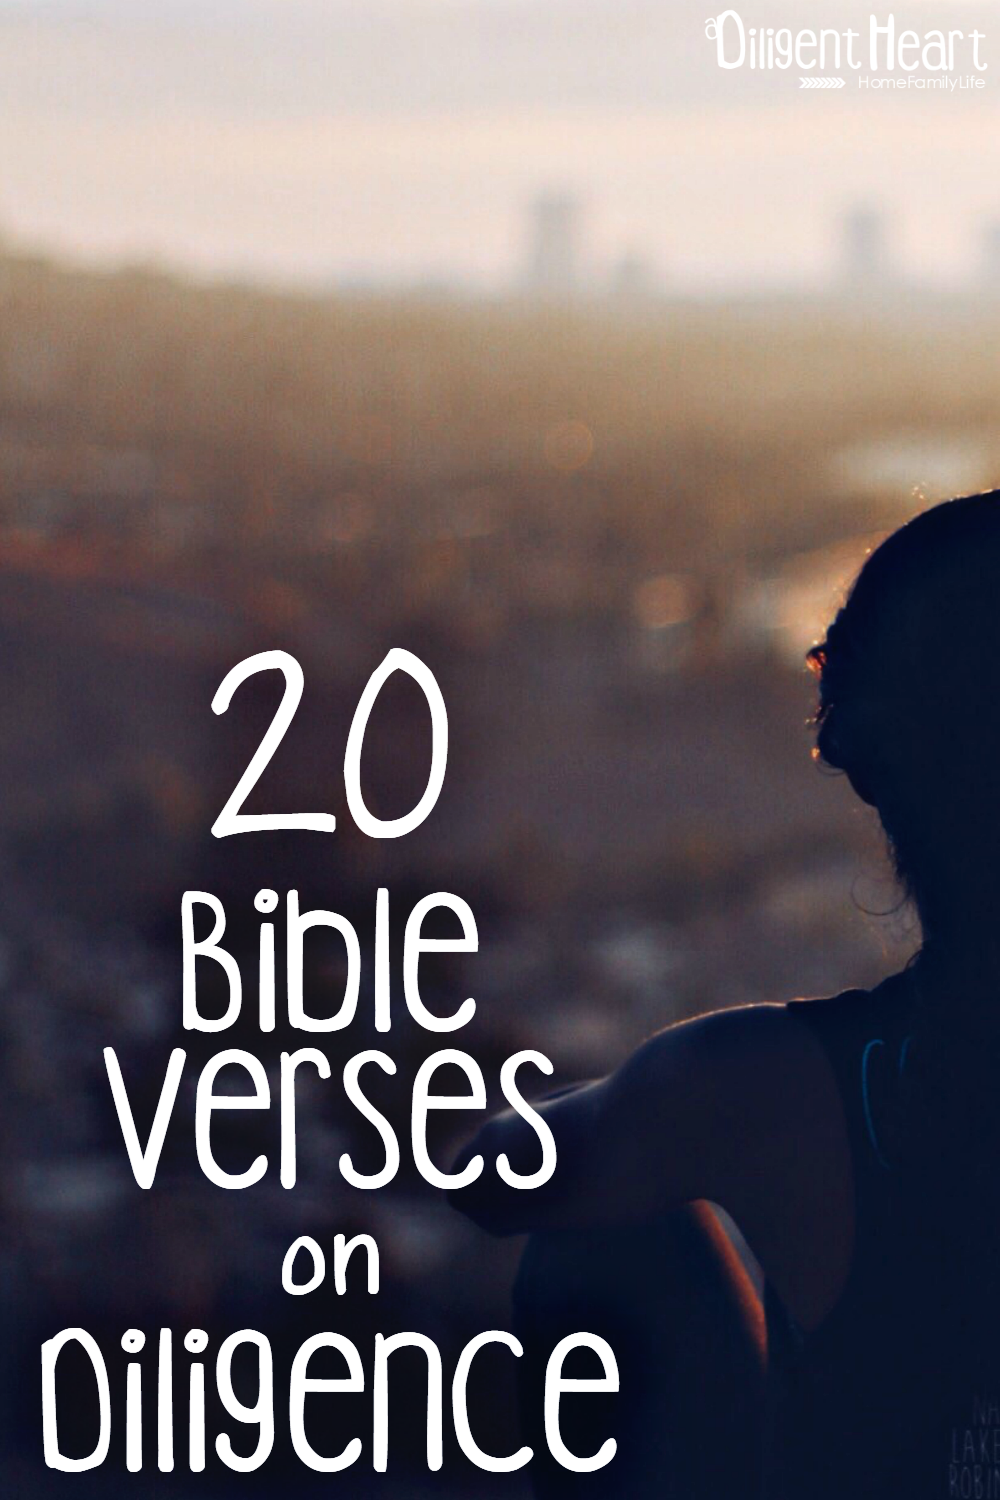 Diligence is a fundamental part of life, and we must be diligent in everything we do, so that we do it with purpose and not just with a fleeting robotic attitude. These verses are a constant encouragement for me, I hope they are for you too. 20 Bible Verses on Diligence | adiligentheart.com